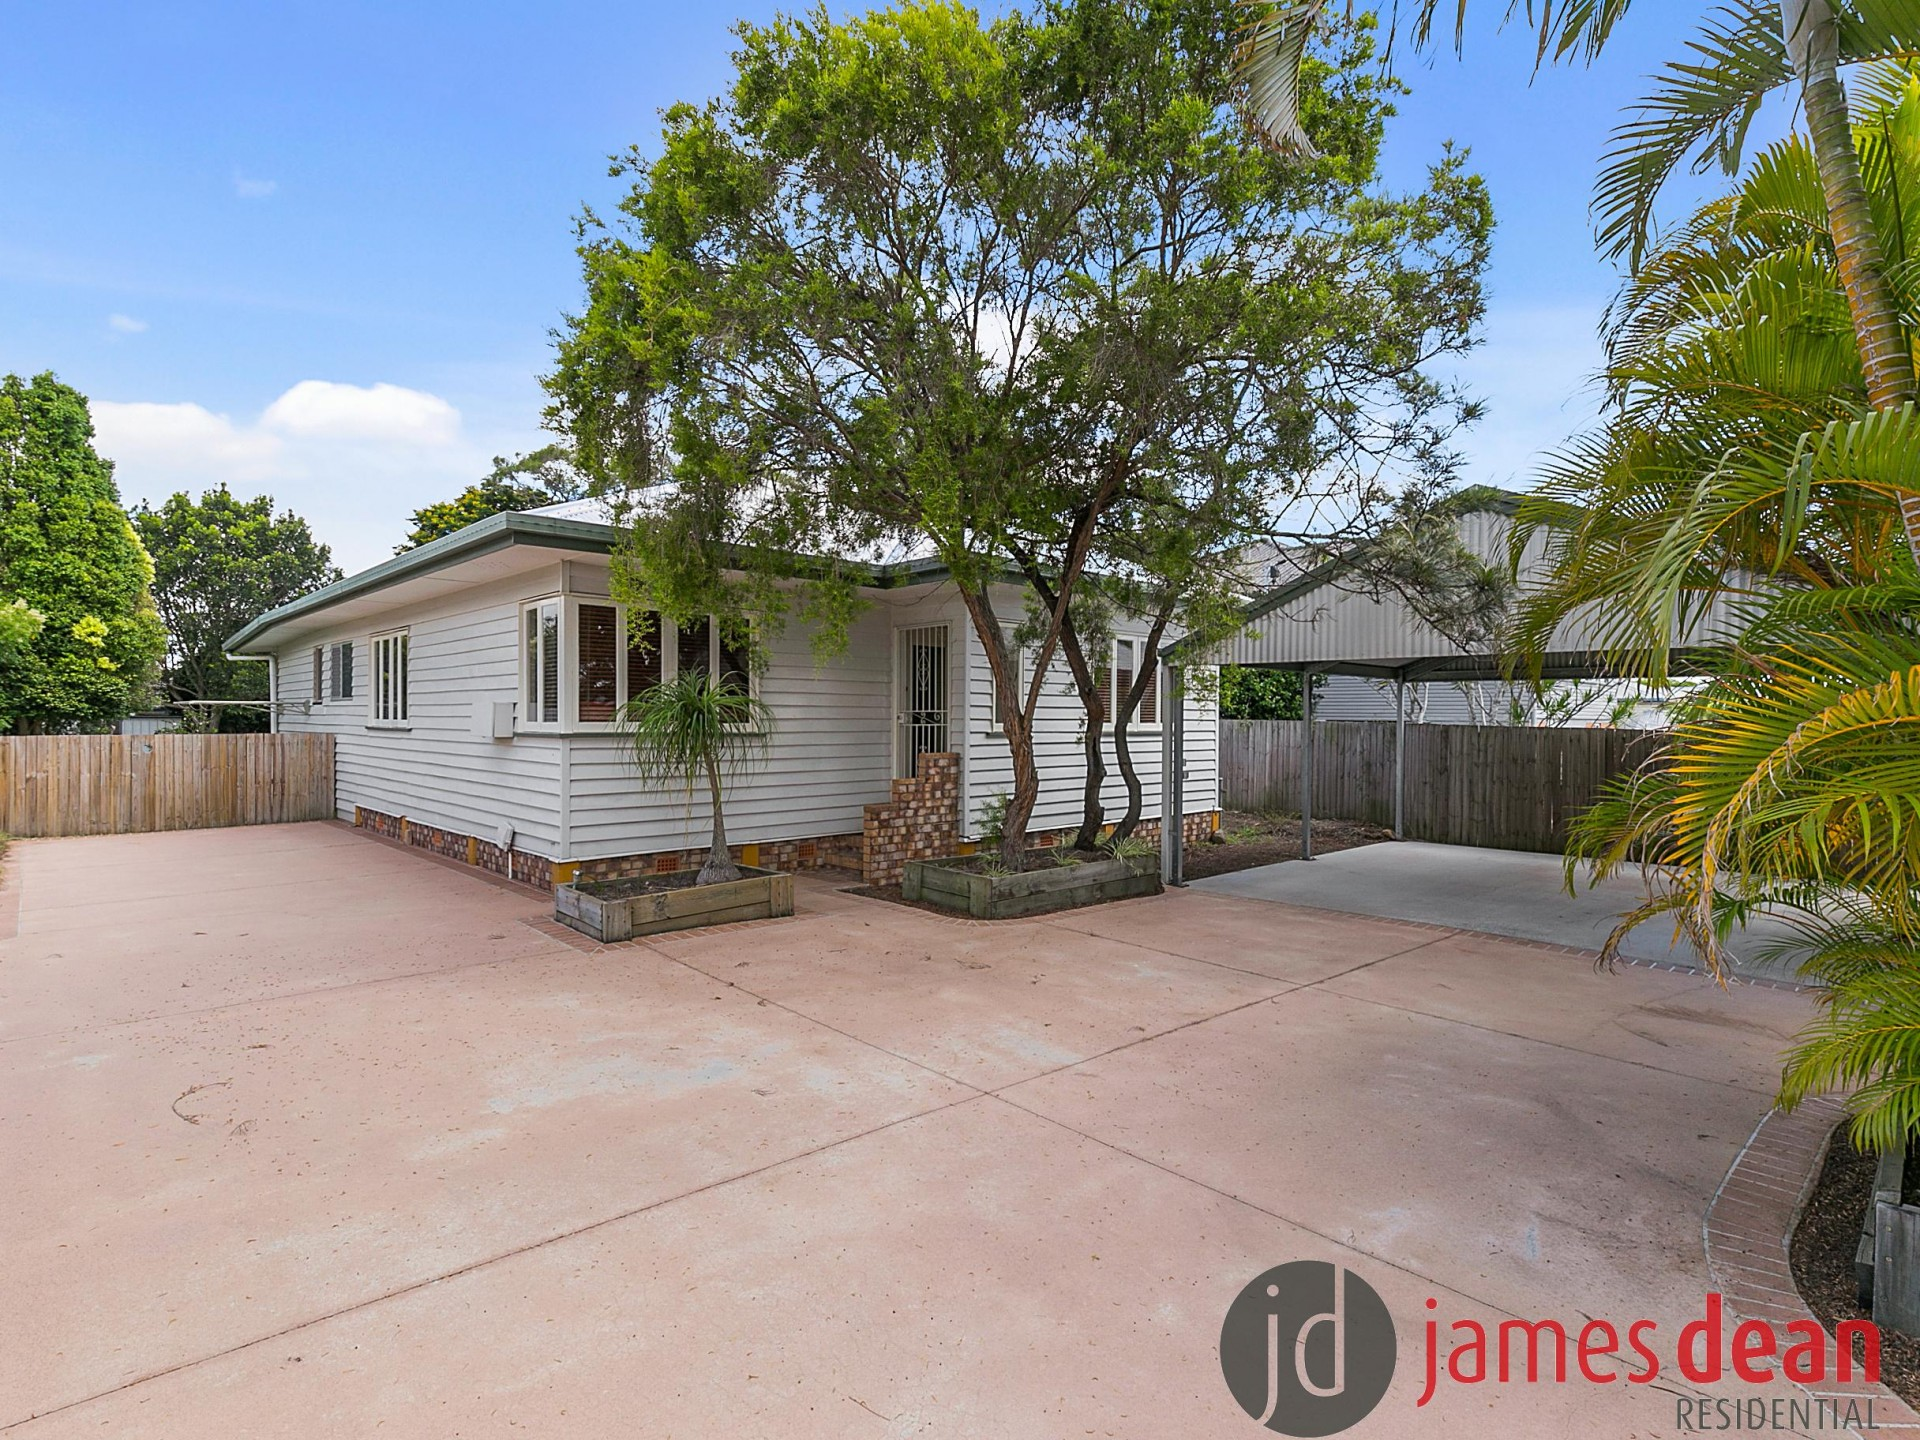 Quaint and Stylish Four Bedroom Home - Plenty of Off Street Parking